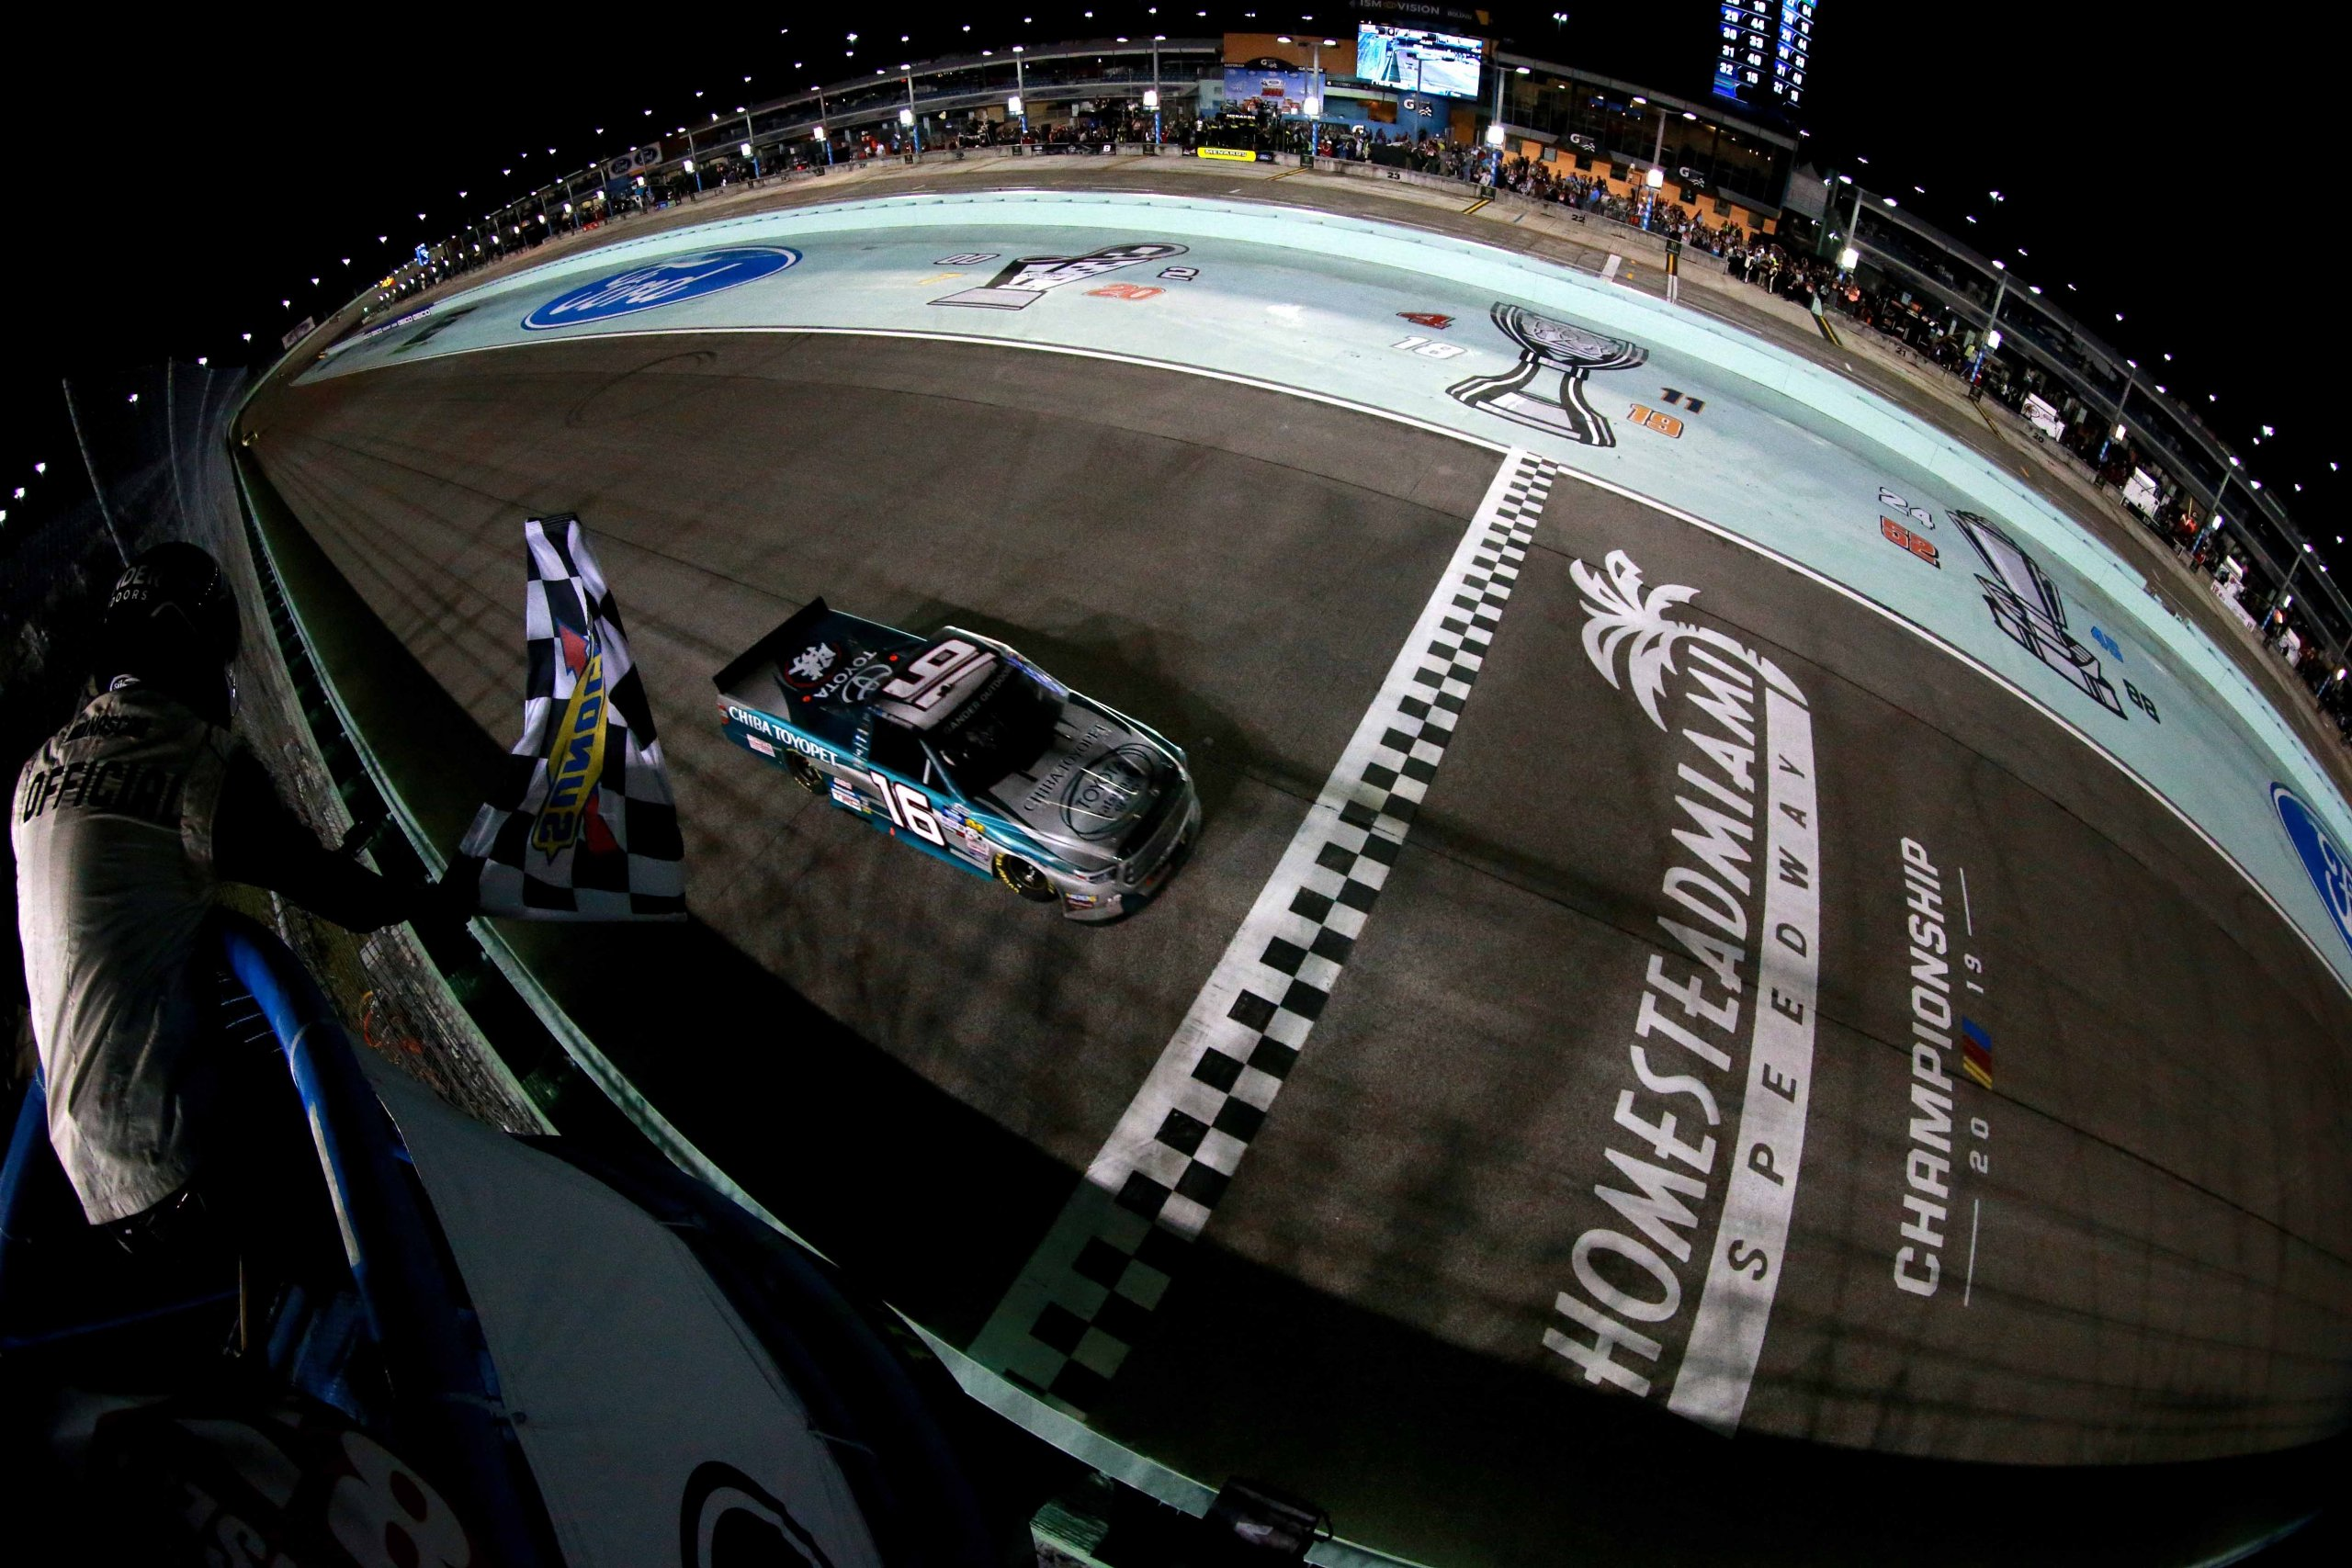 Austin Hill wins at Homestead-Miami Speedway - NASCAR Truck Series